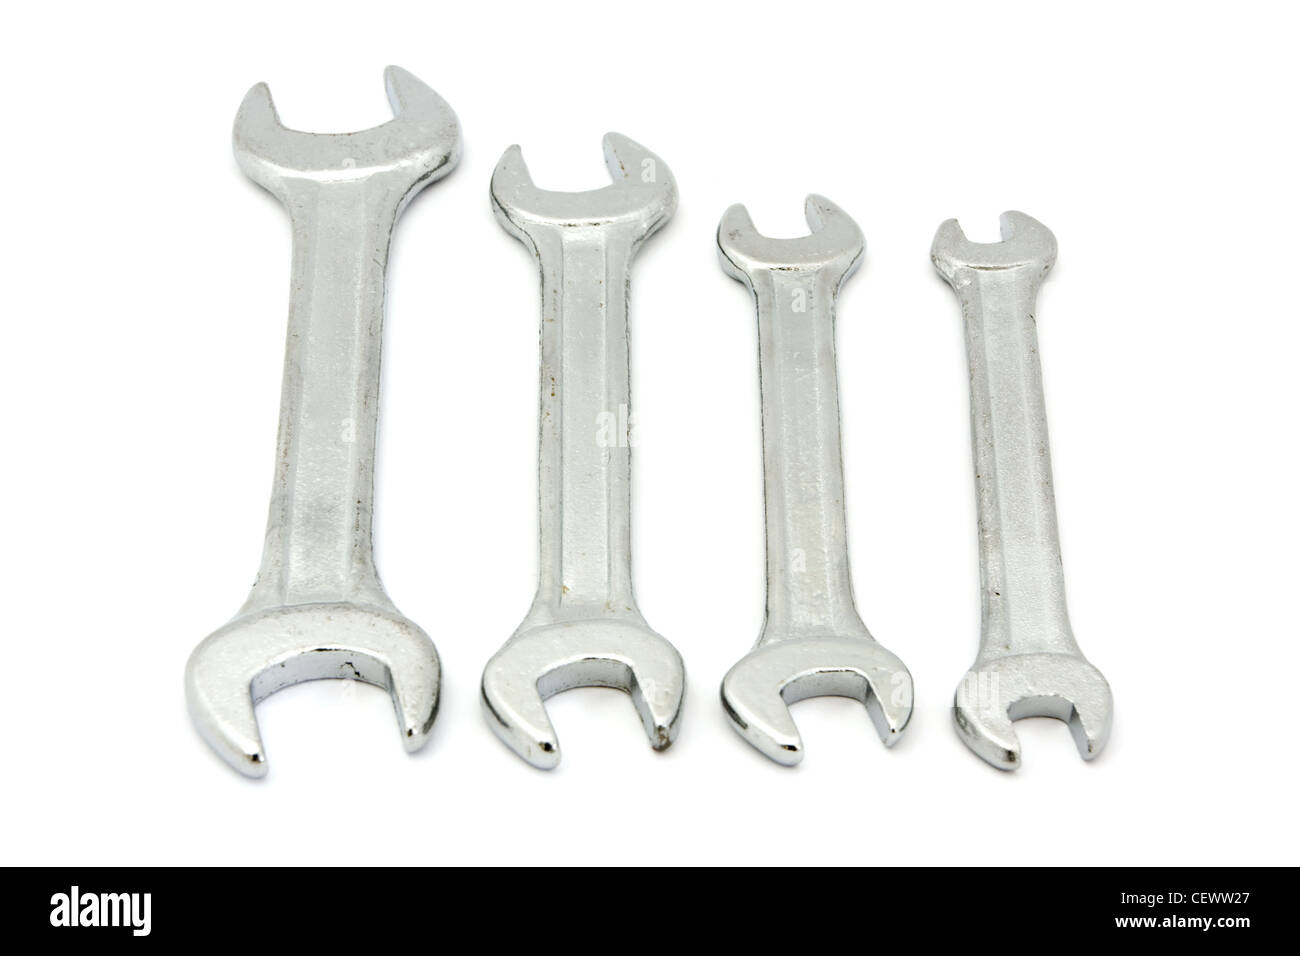 Line of four spanners over white - Stock Image